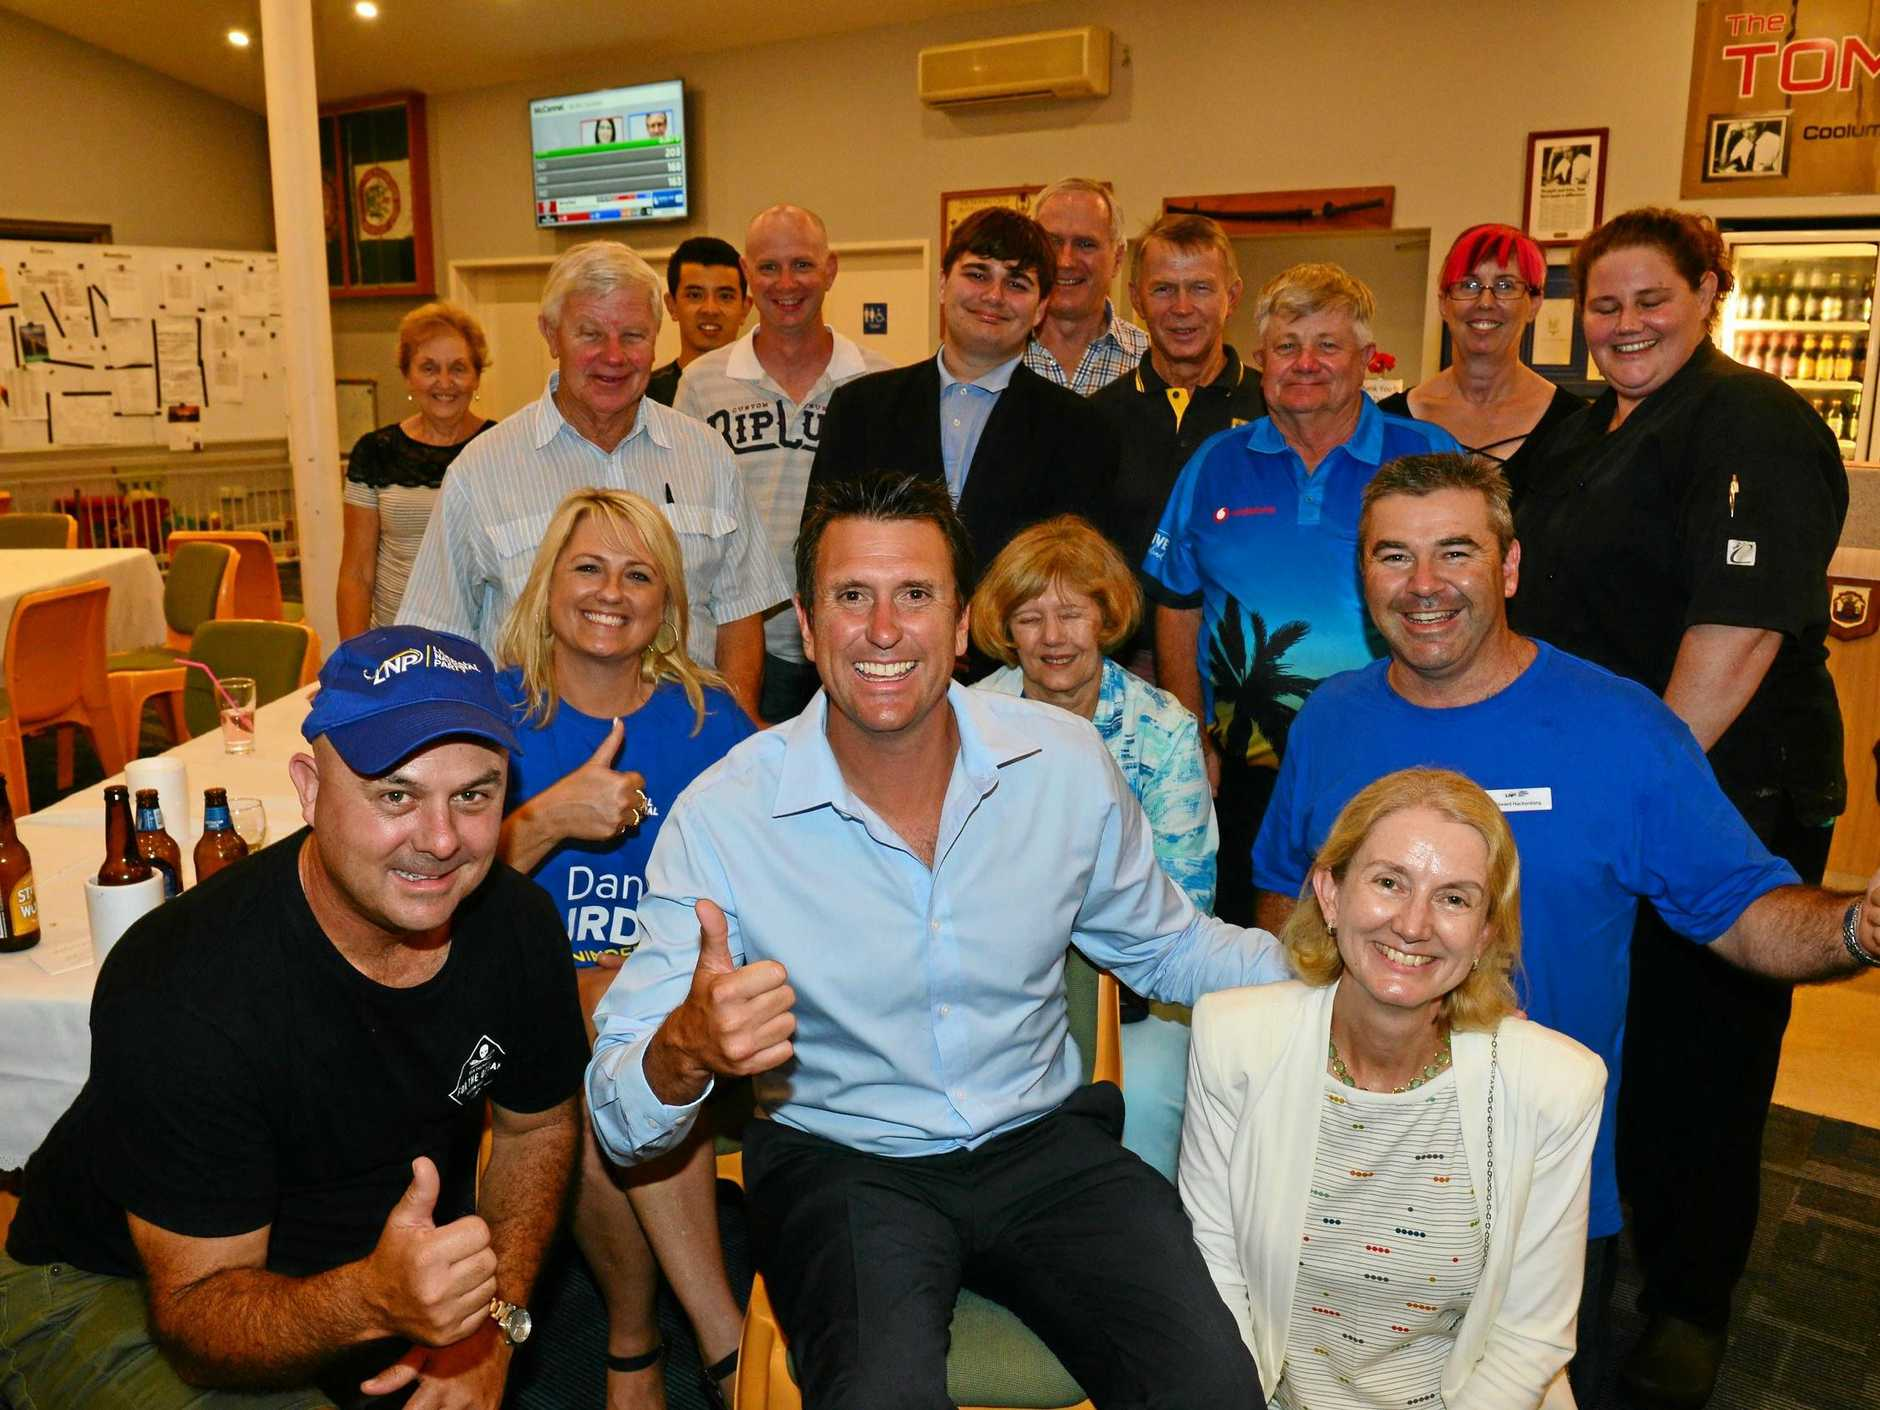 Dan Purdie, LNP for Ninderry with some of his supporters at Peregian-Coolum RSL after his election win.